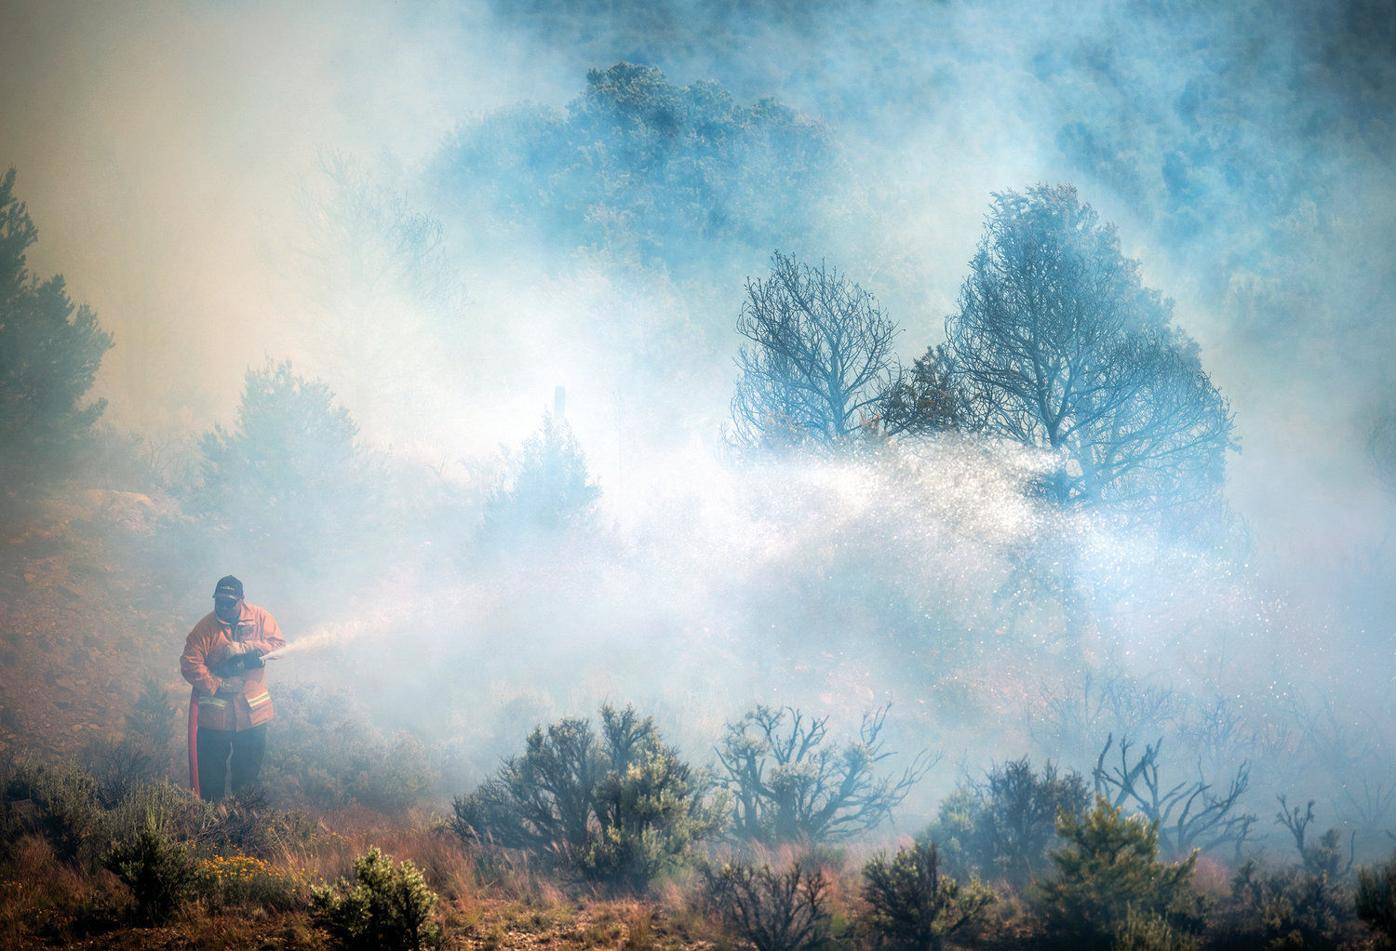 Science can help ease local wildfire threats